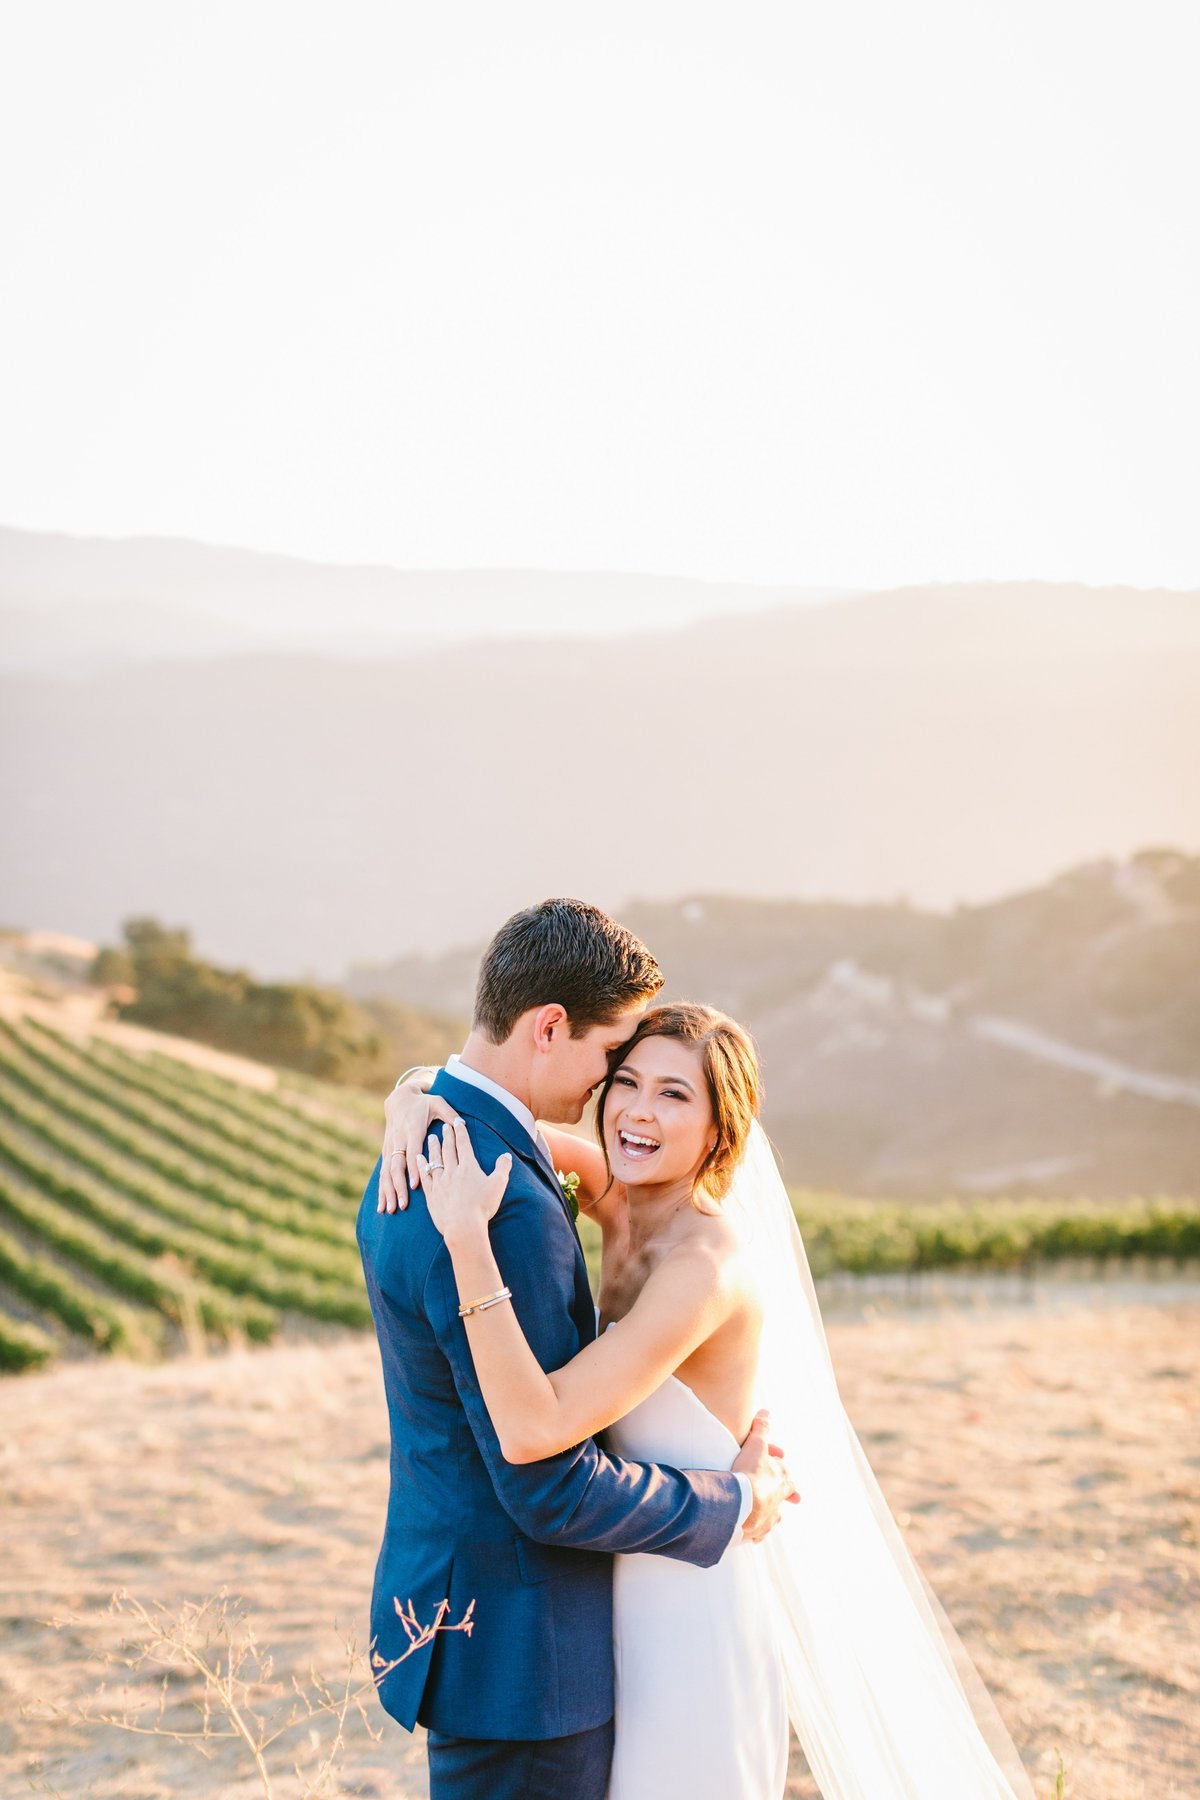 Best California Wedding Photographer-Jodee Debes Photography-186